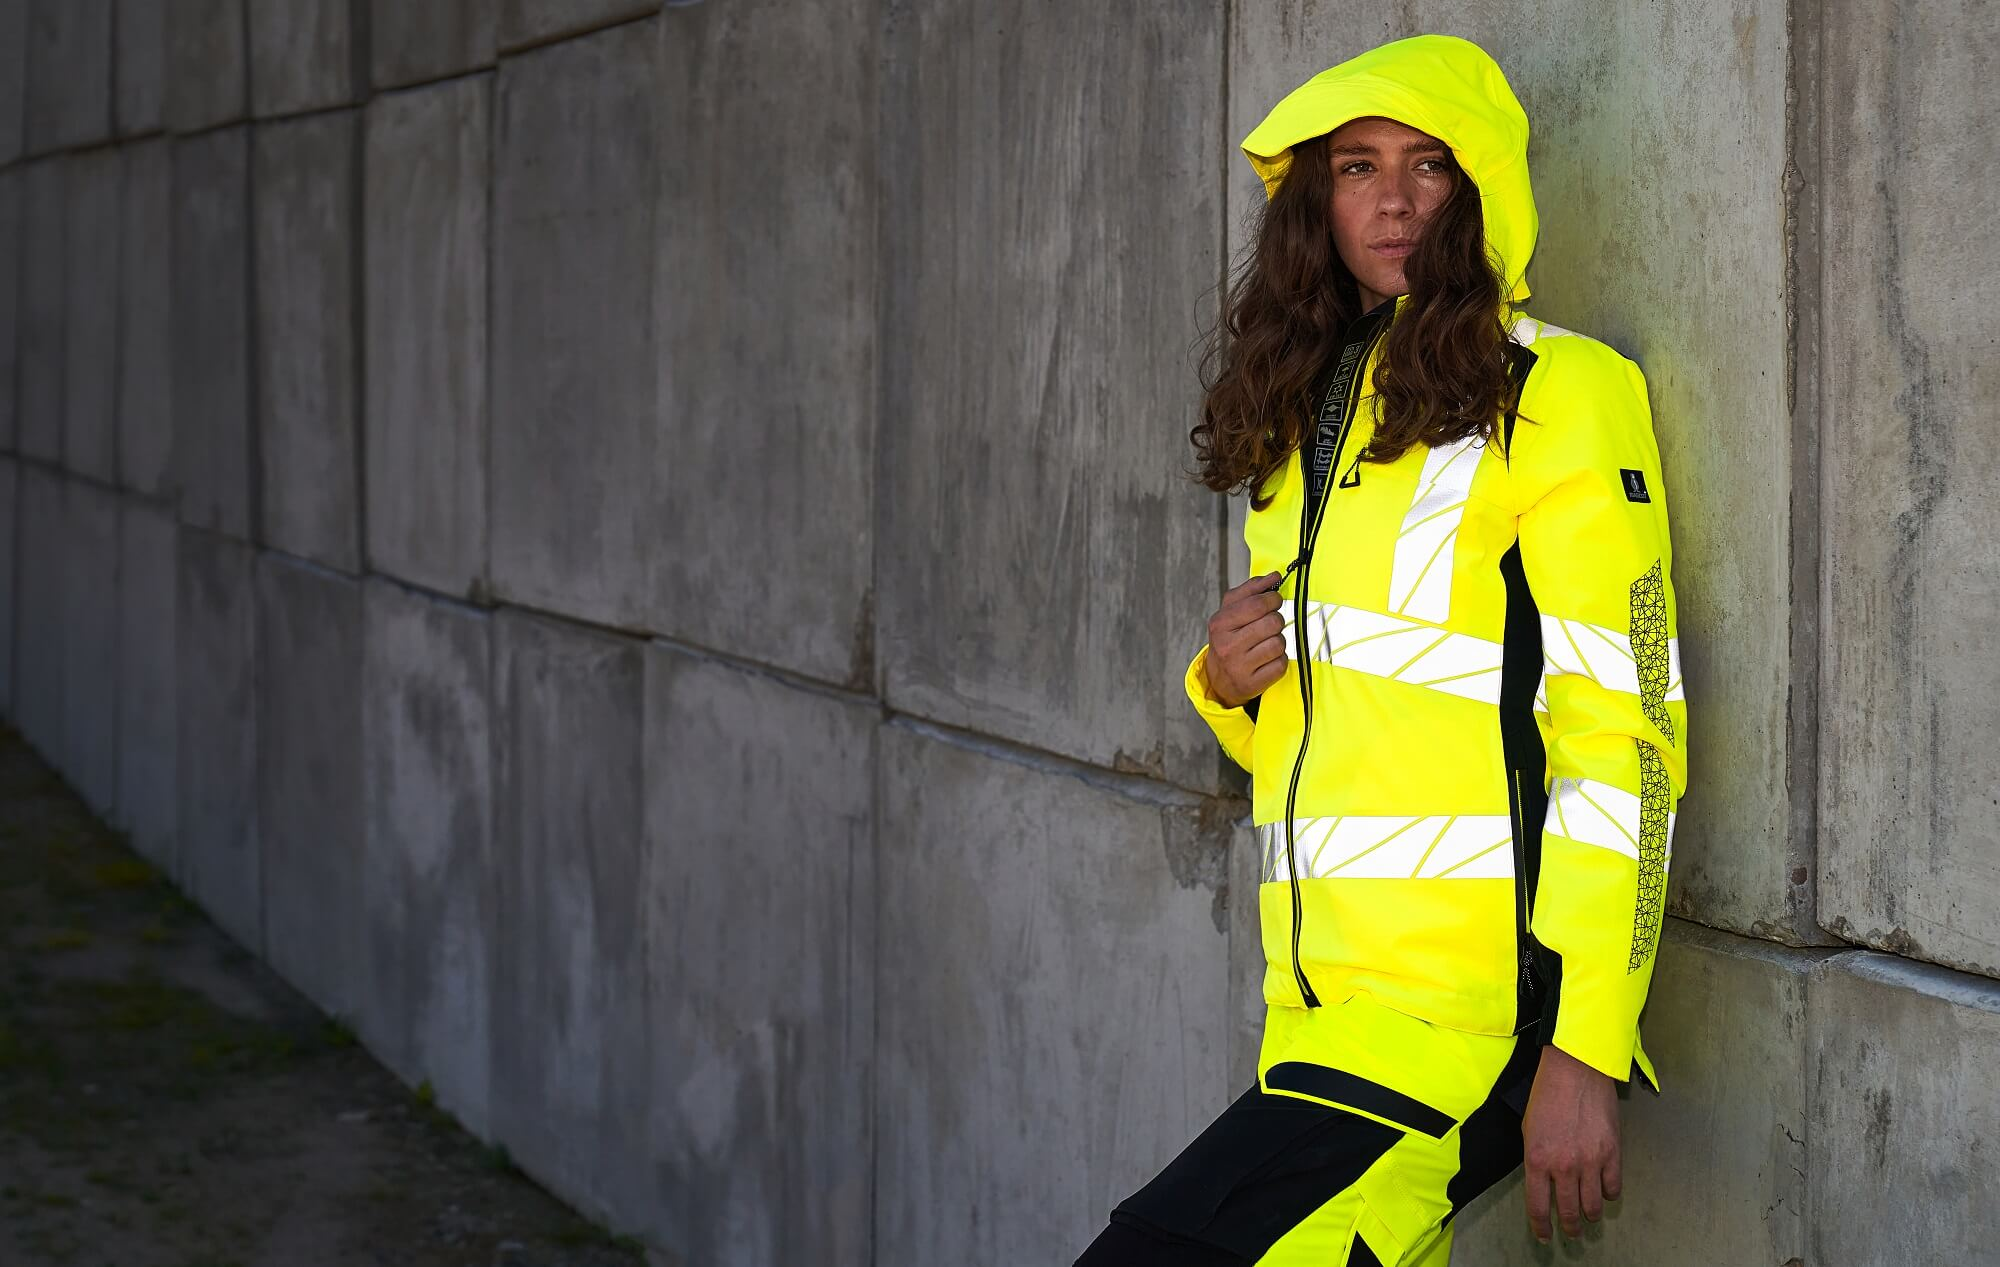 Winter Jacket & Work trousers for women - Fluorescent yellow - MASCOT® ACCELERATE SAFE